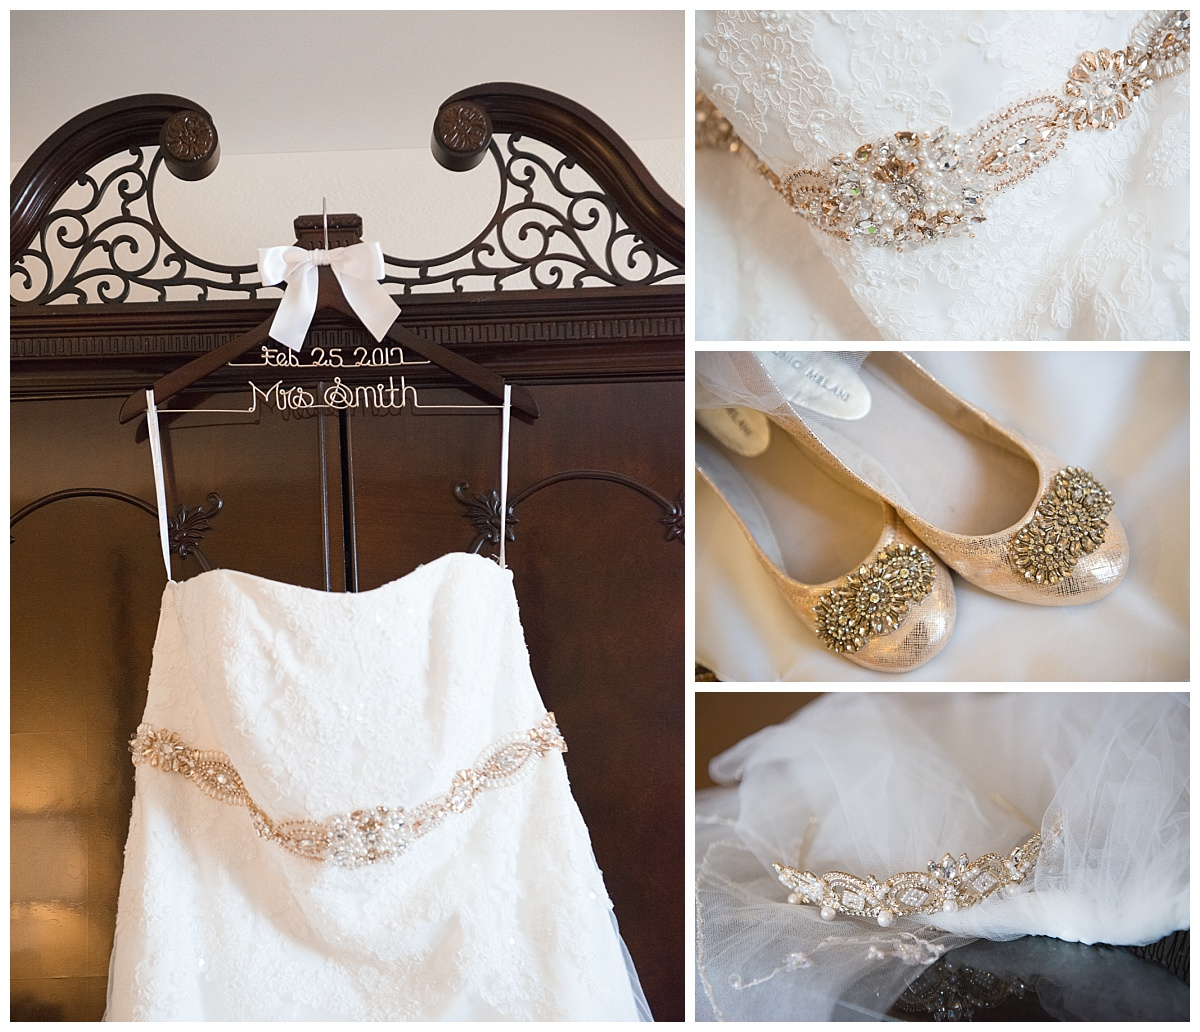 Lacy dress detail and jeweled details